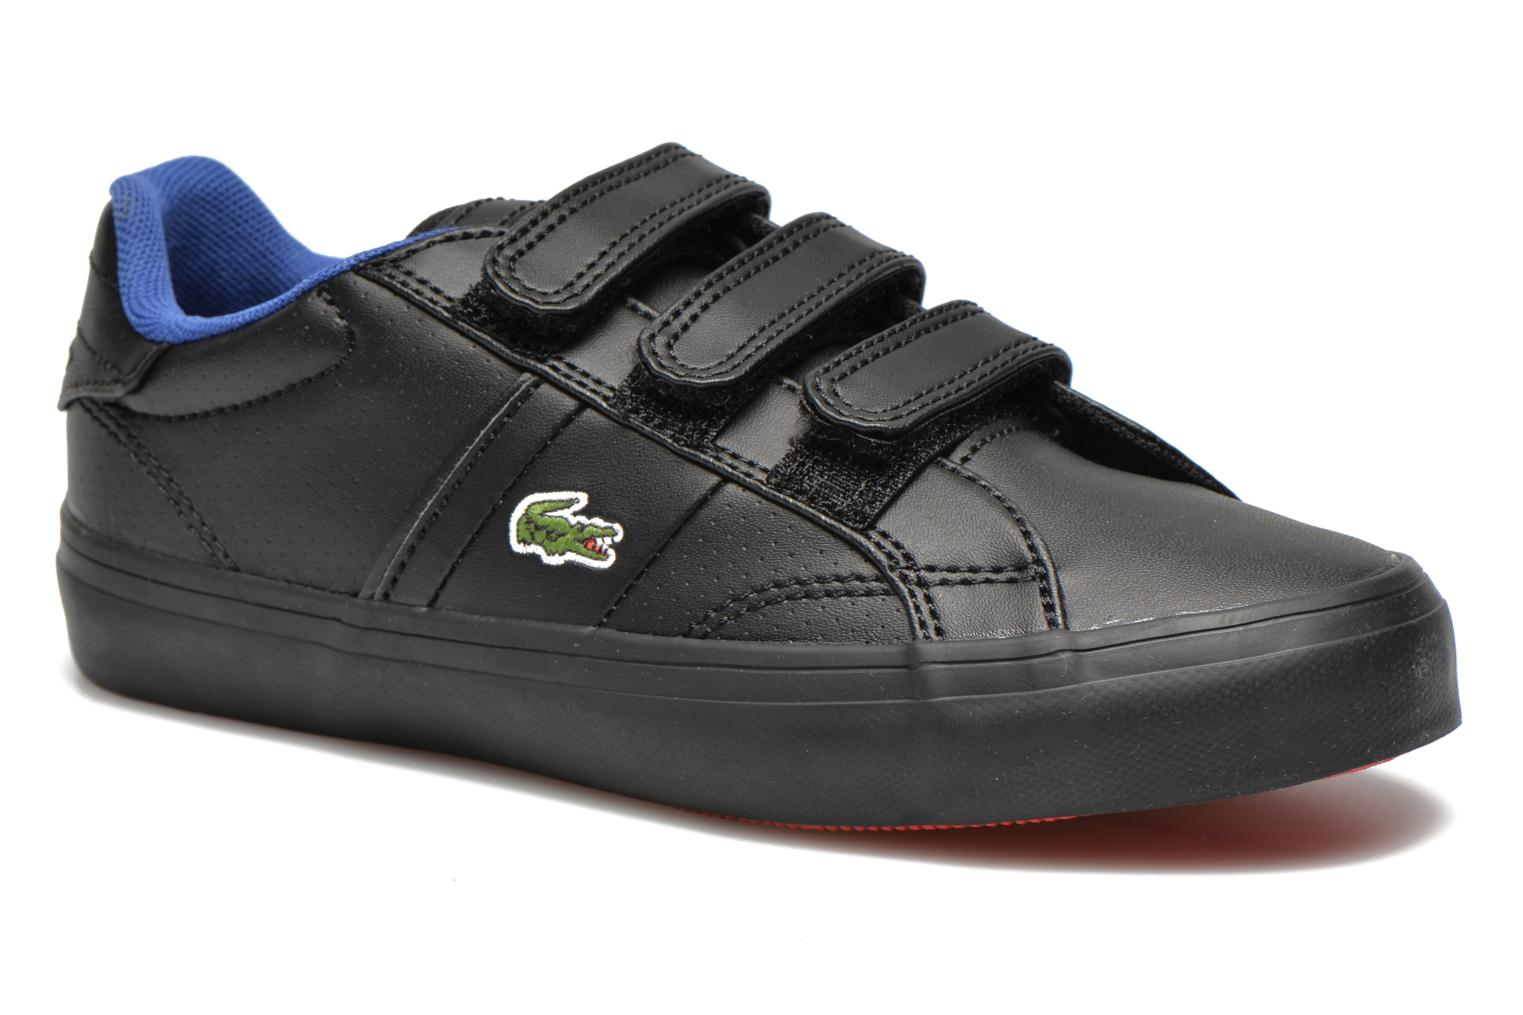 Sneakers Fairlead Tcl Spc by Lacoste